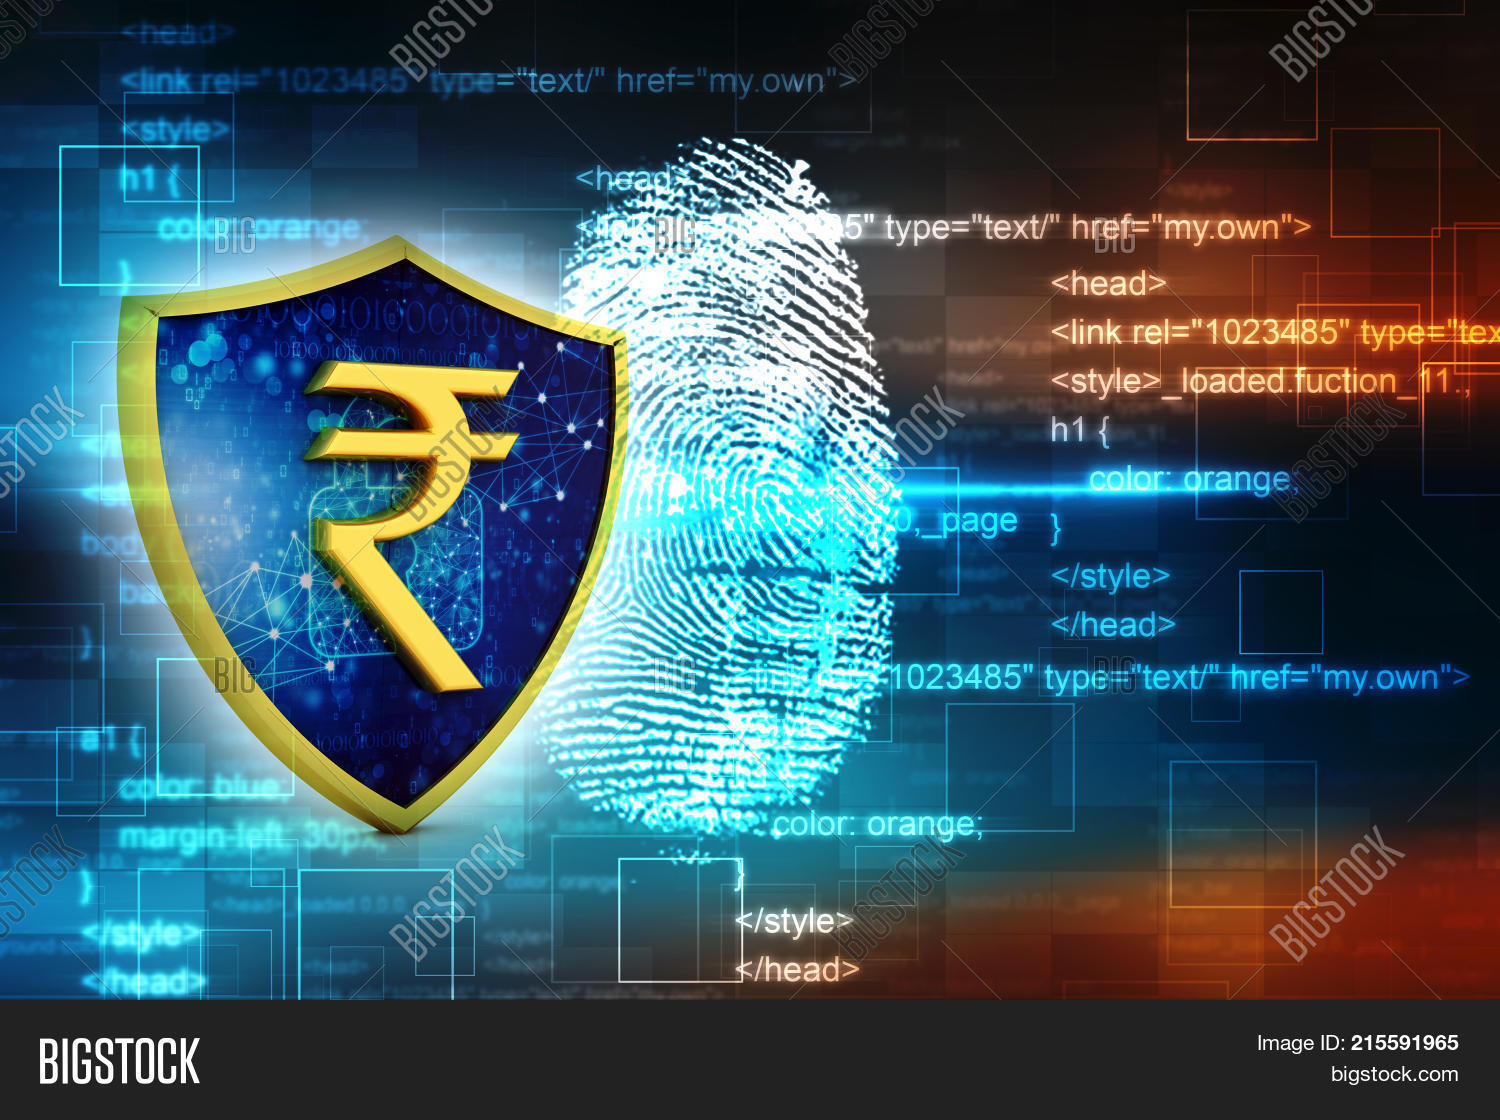 Indian Rupee Symbol On Image Photo Free Trial Bigstock